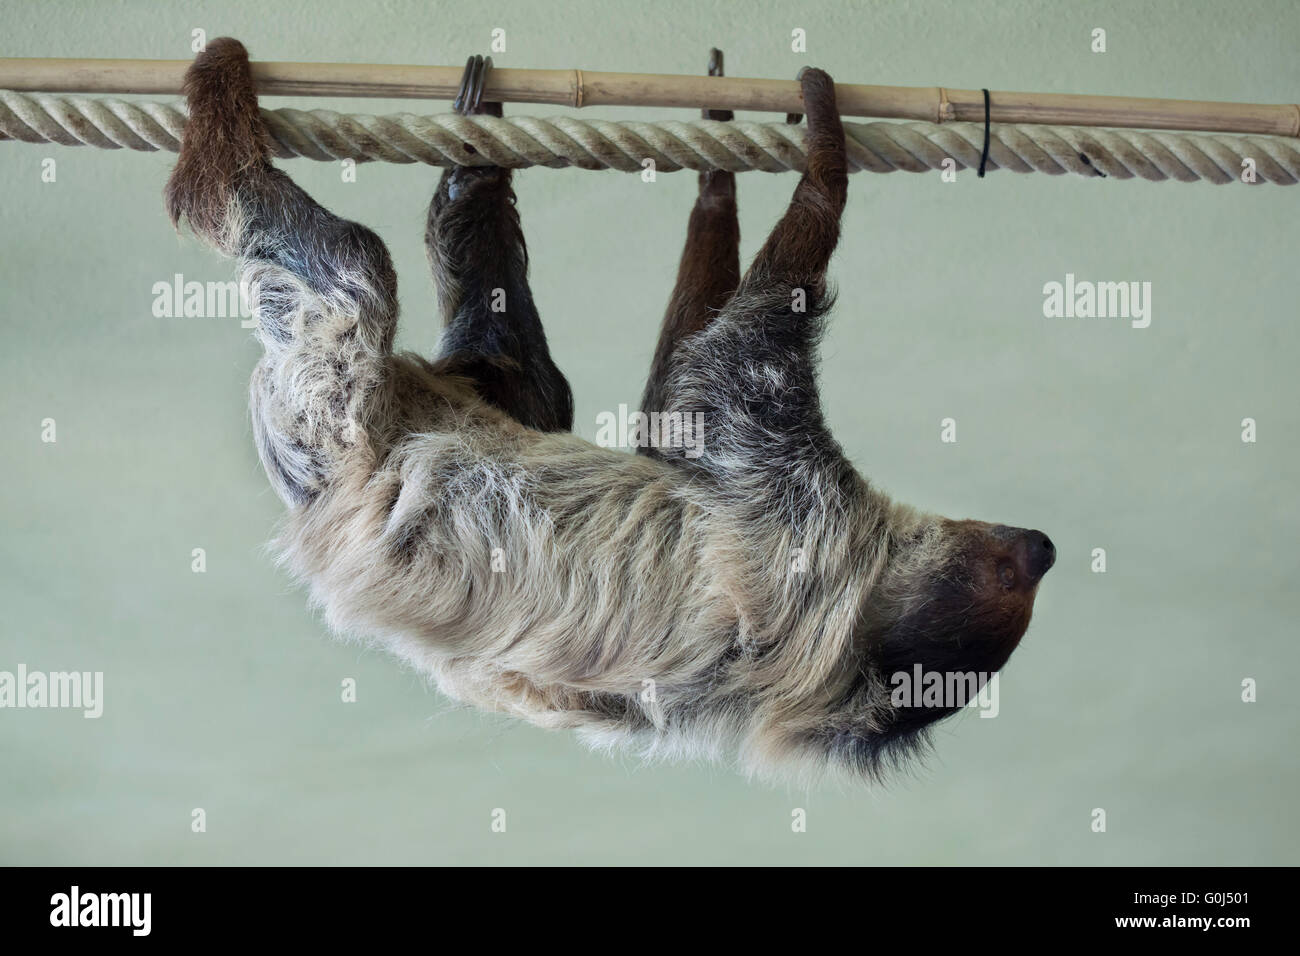 Linnaeus's two-toed sloth (Choloepus didactylus), also known as the southern two-toed sloth at Dresden Zoo, Saxony, Germany. Stock Photo